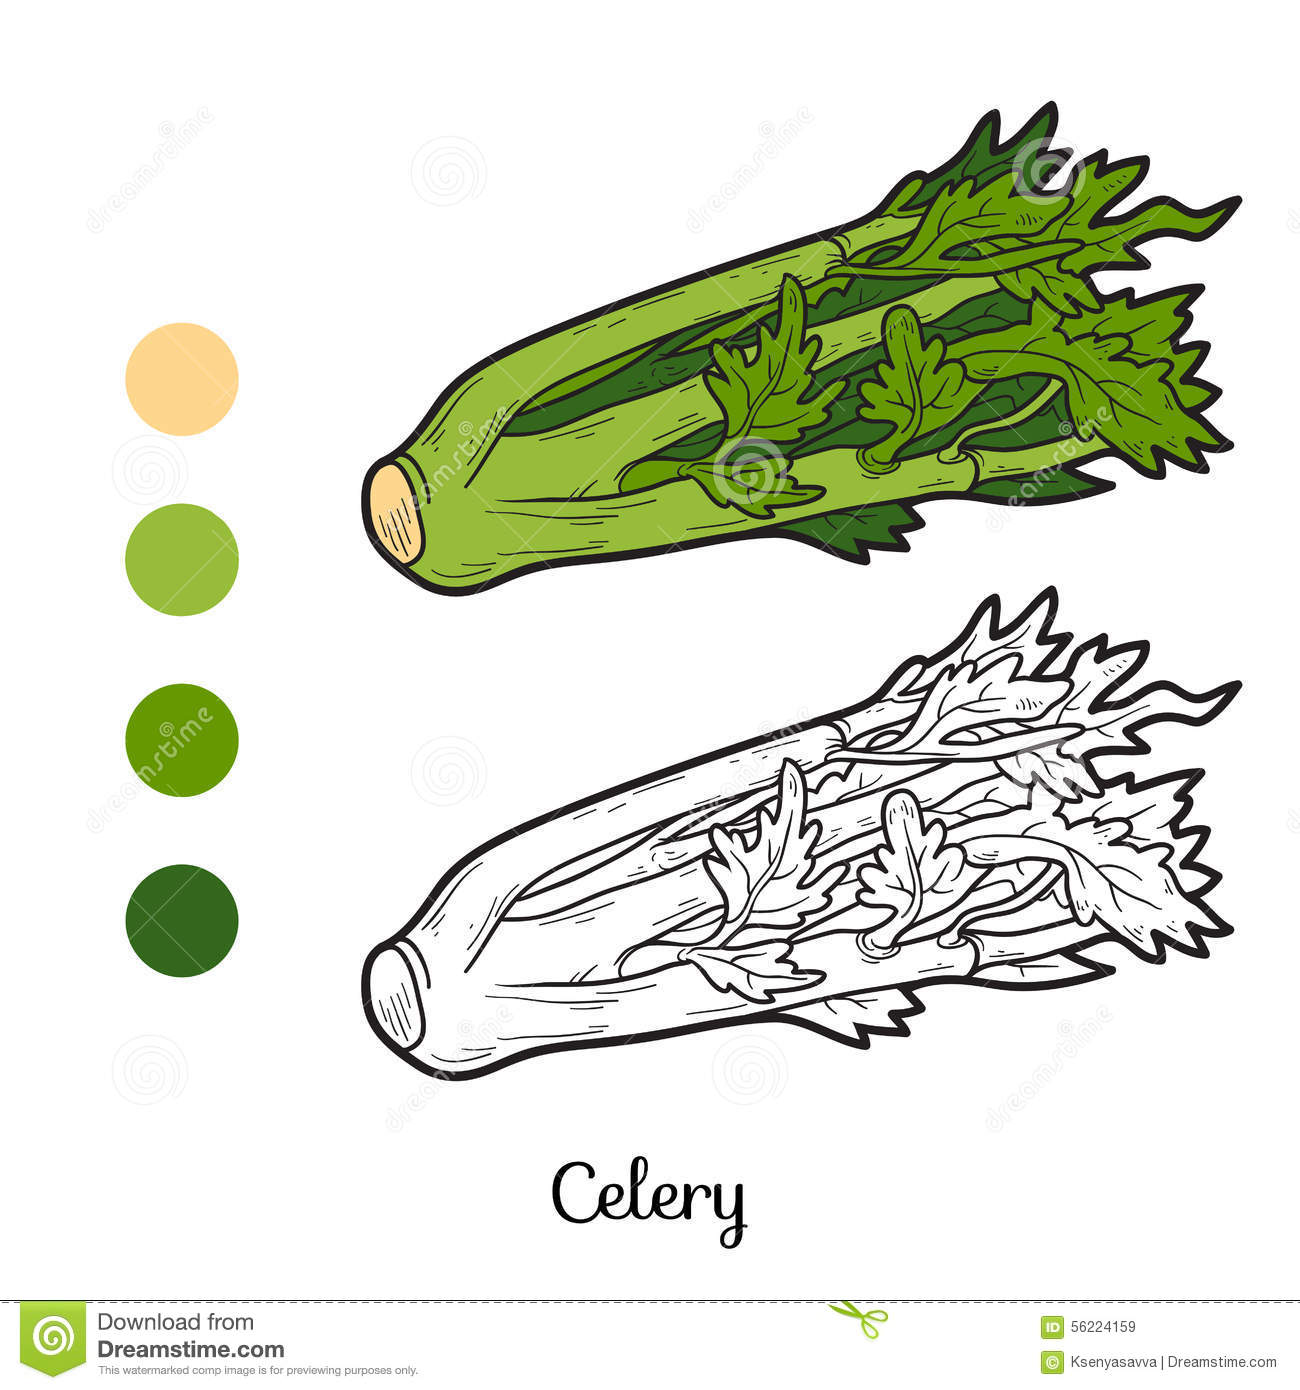 Adult Top Celery Coloring Page Images cute coloring book fruits and vegetables celery stock vector image gallery images